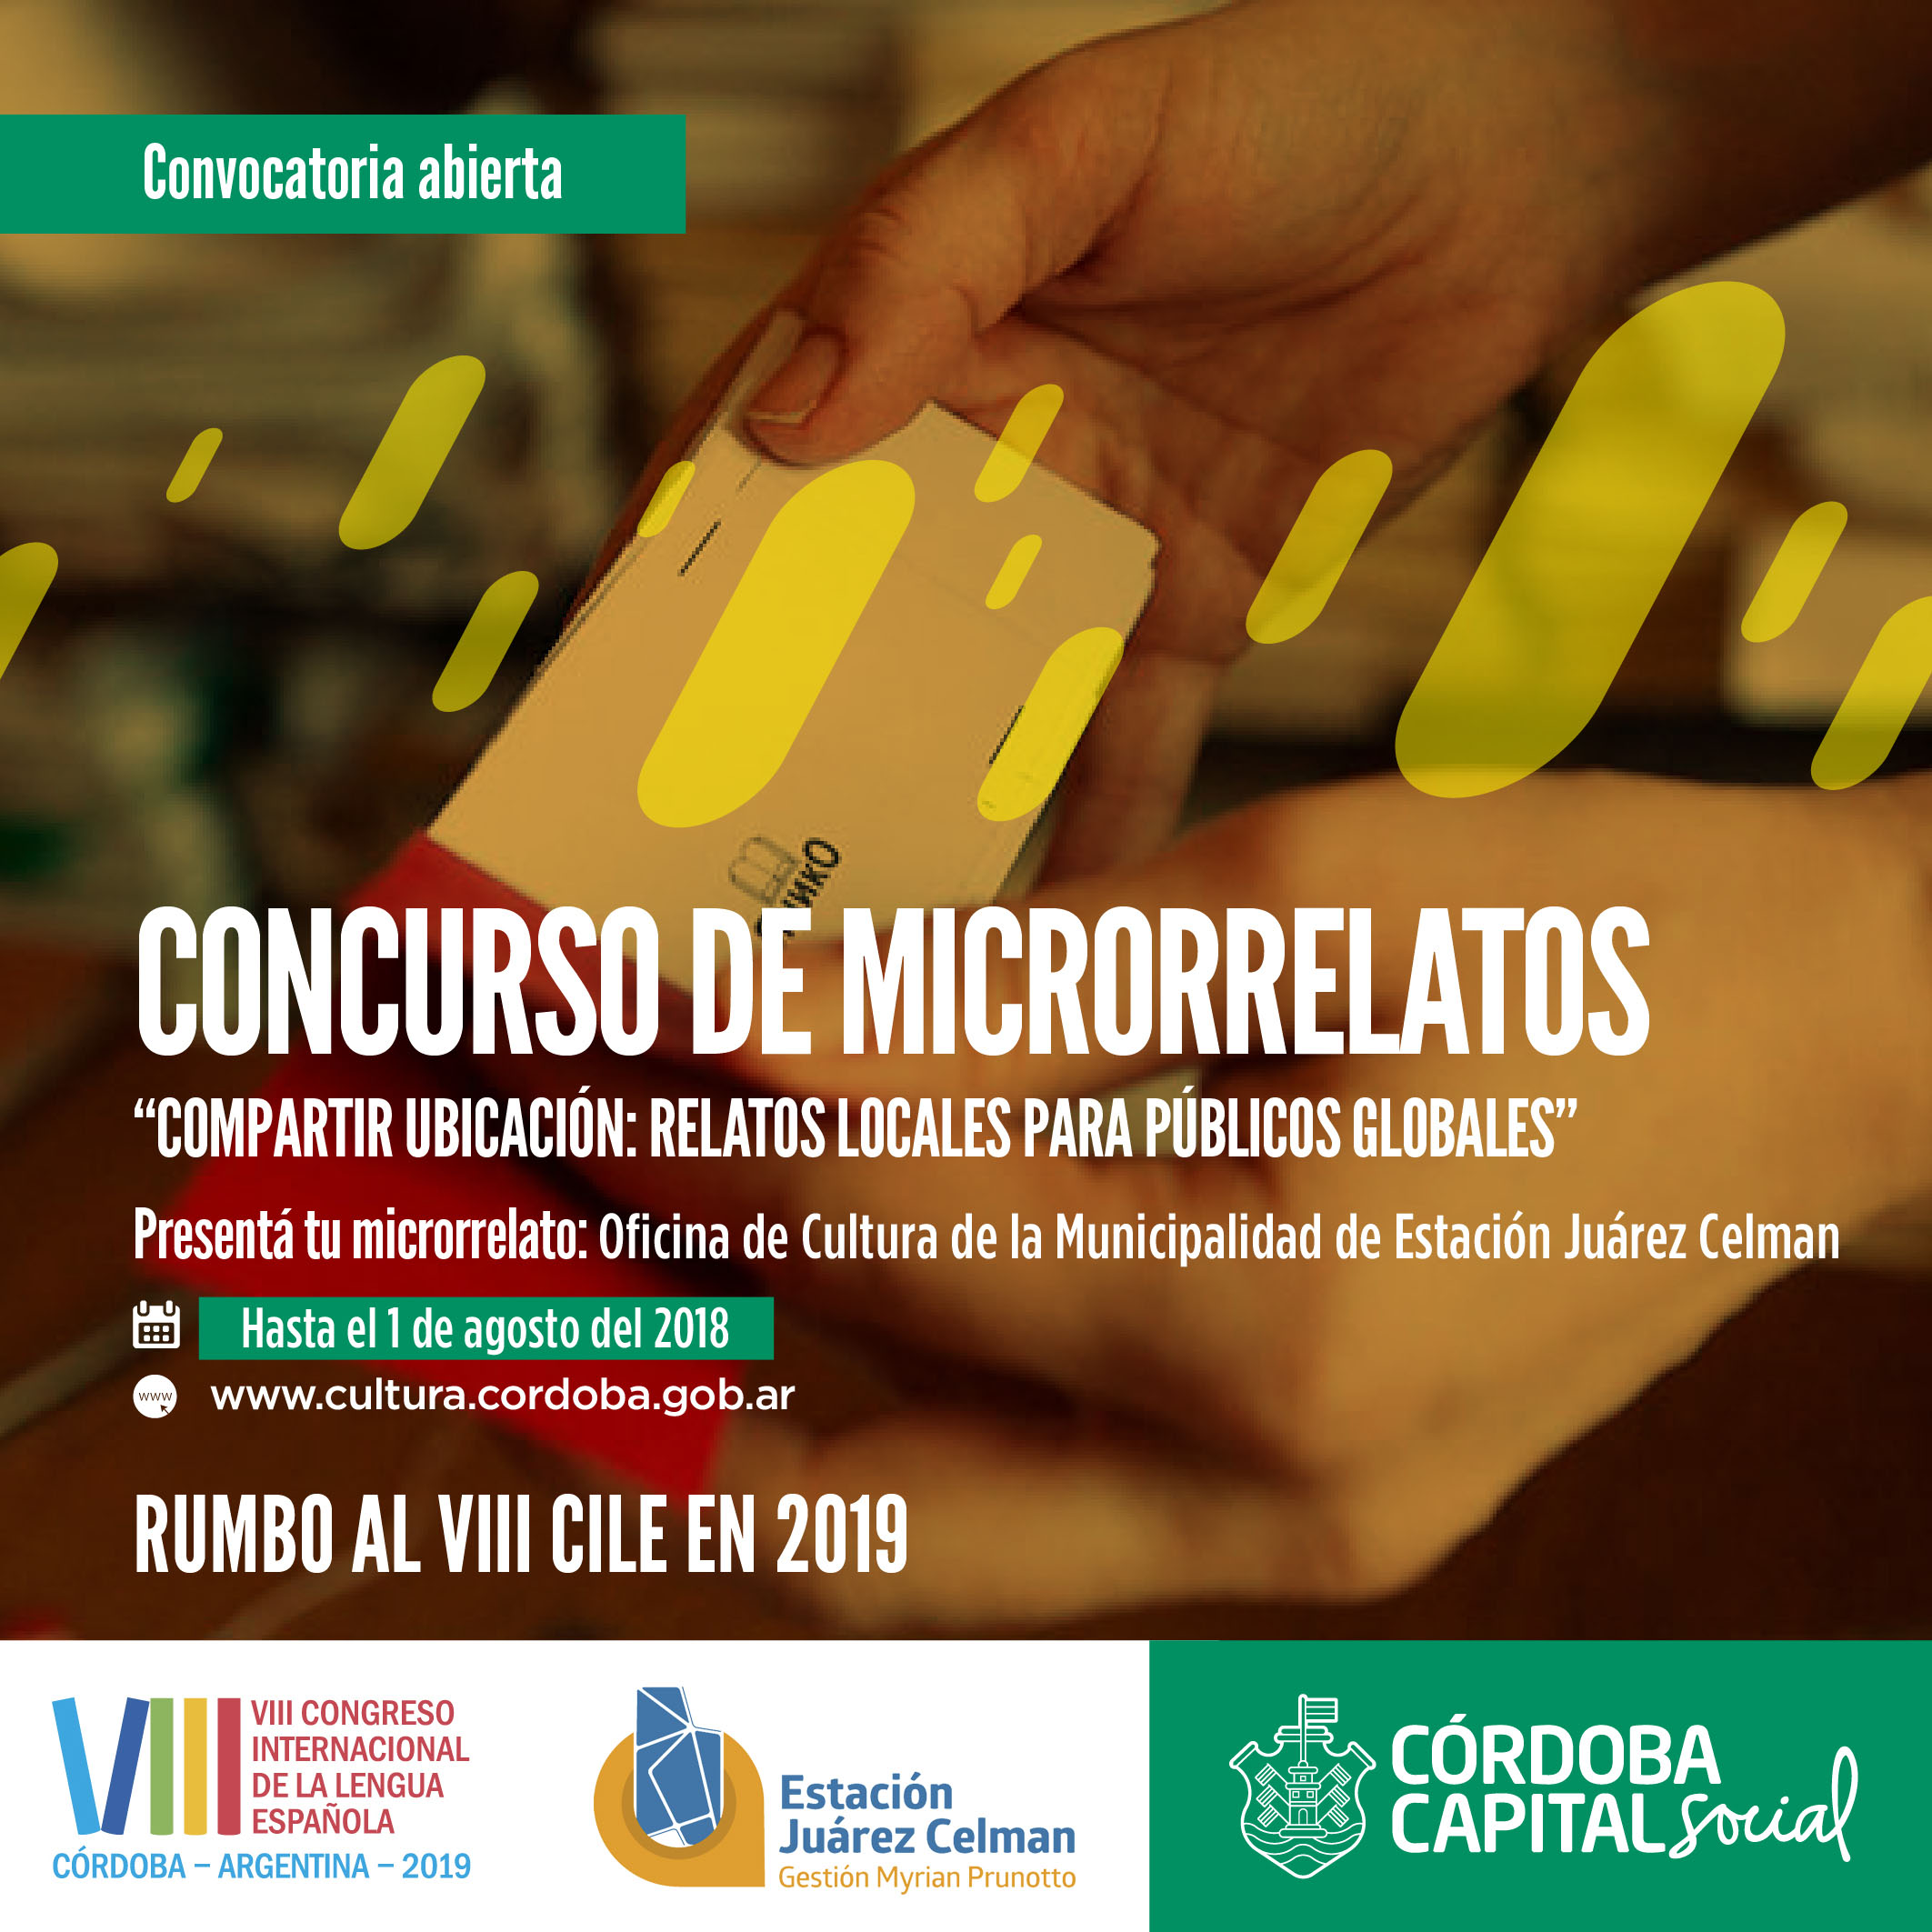 Flyer_Concurso Microrelatos_2018